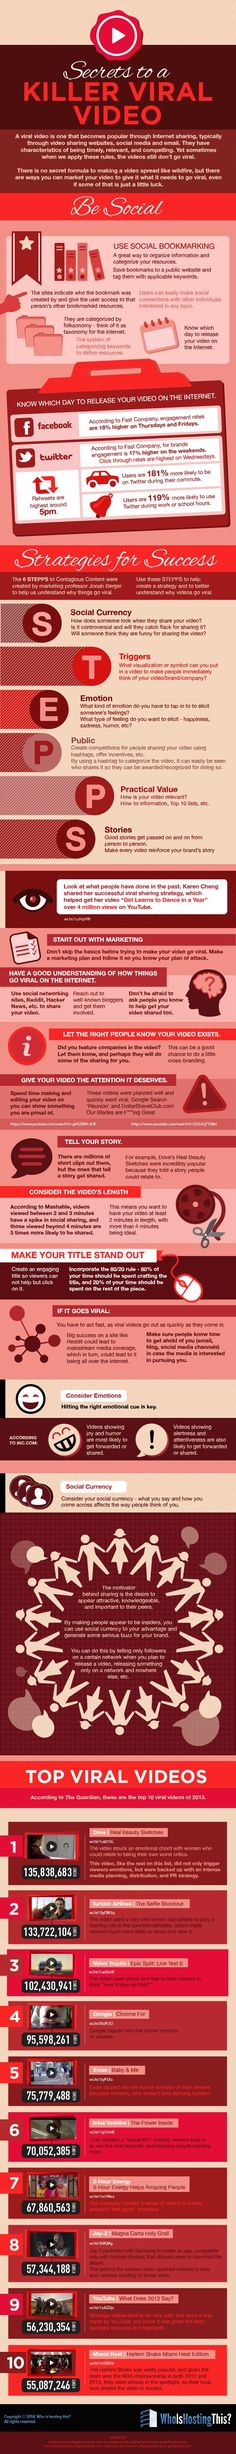 Secret to a Killer Viral Video #infographic